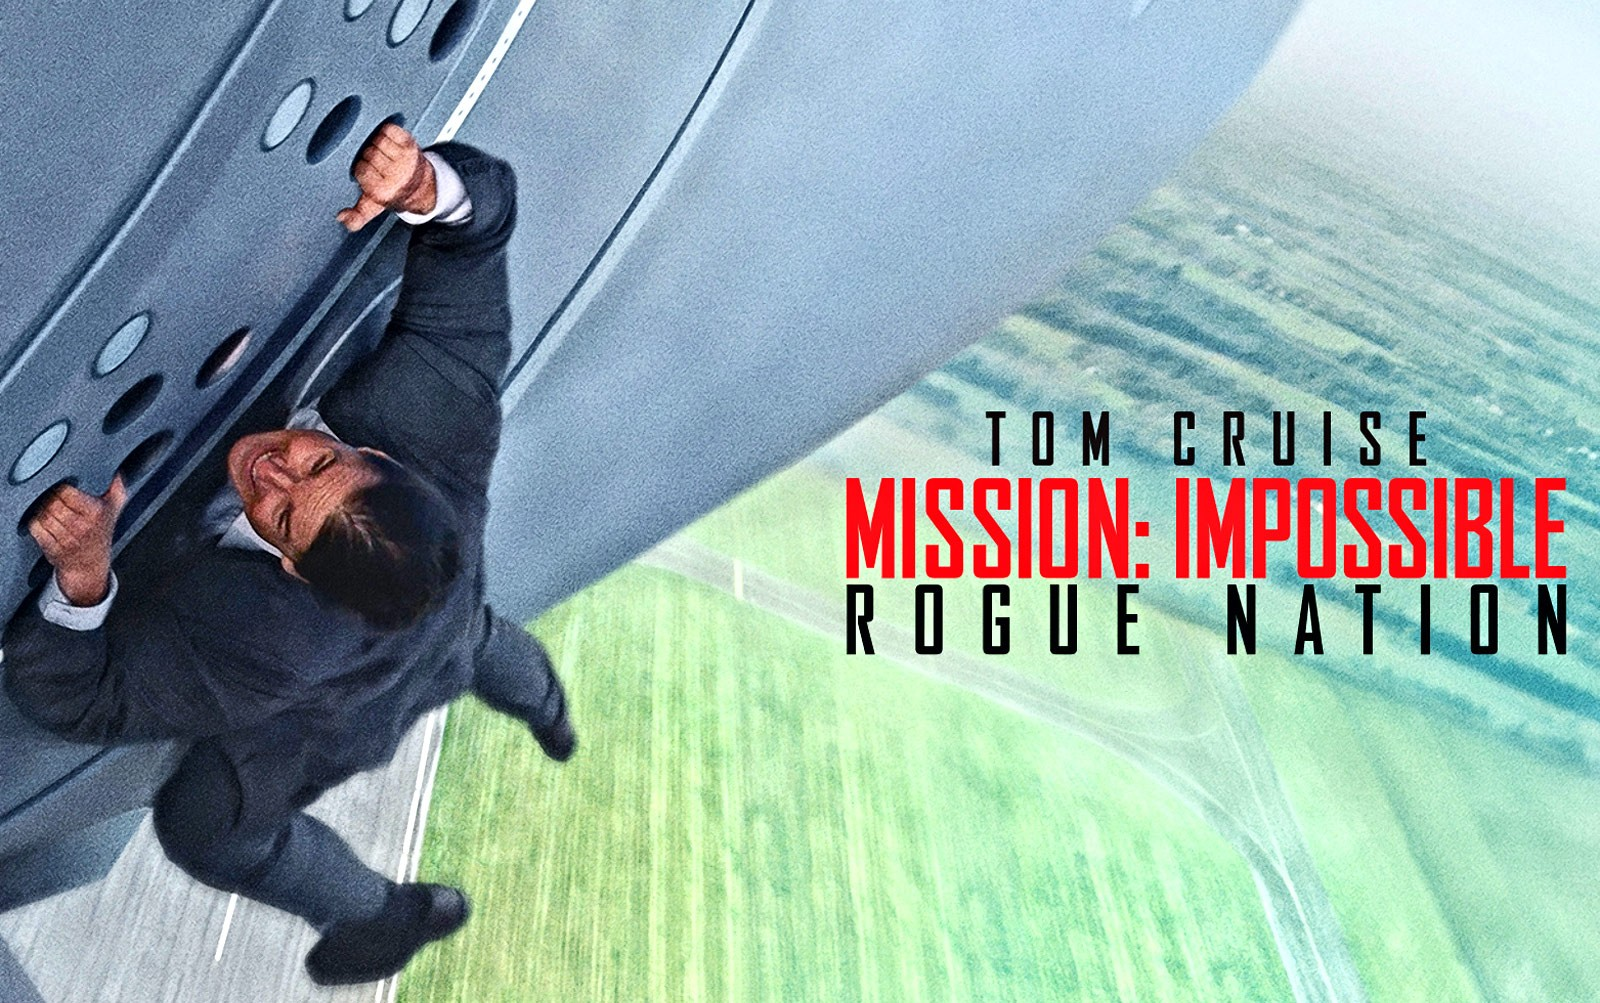 mission impossible rogue nation 2015 dvd planet store. Black Bedroom Furniture Sets. Home Design Ideas